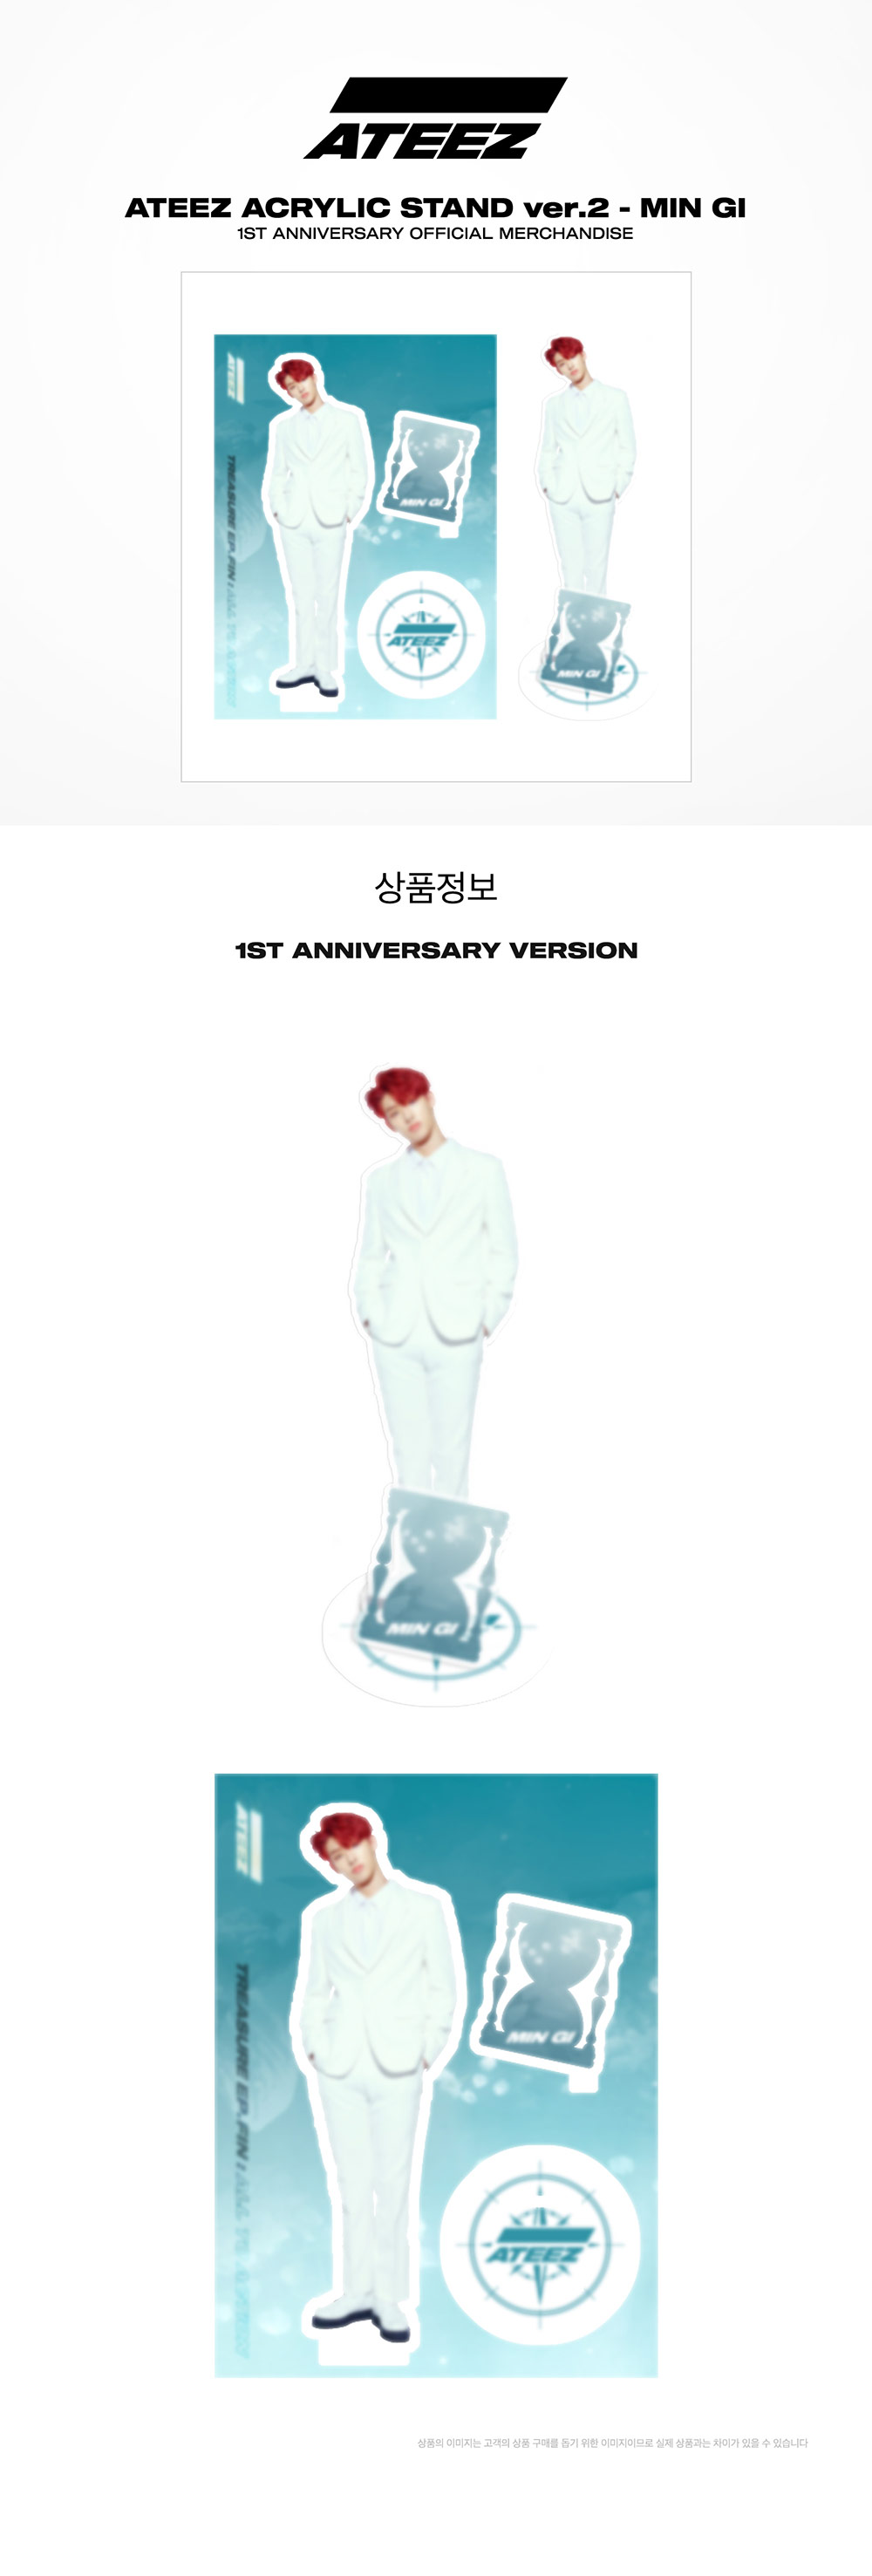 ateez_1st_anniversary_ACRYLIC_STAND2-2